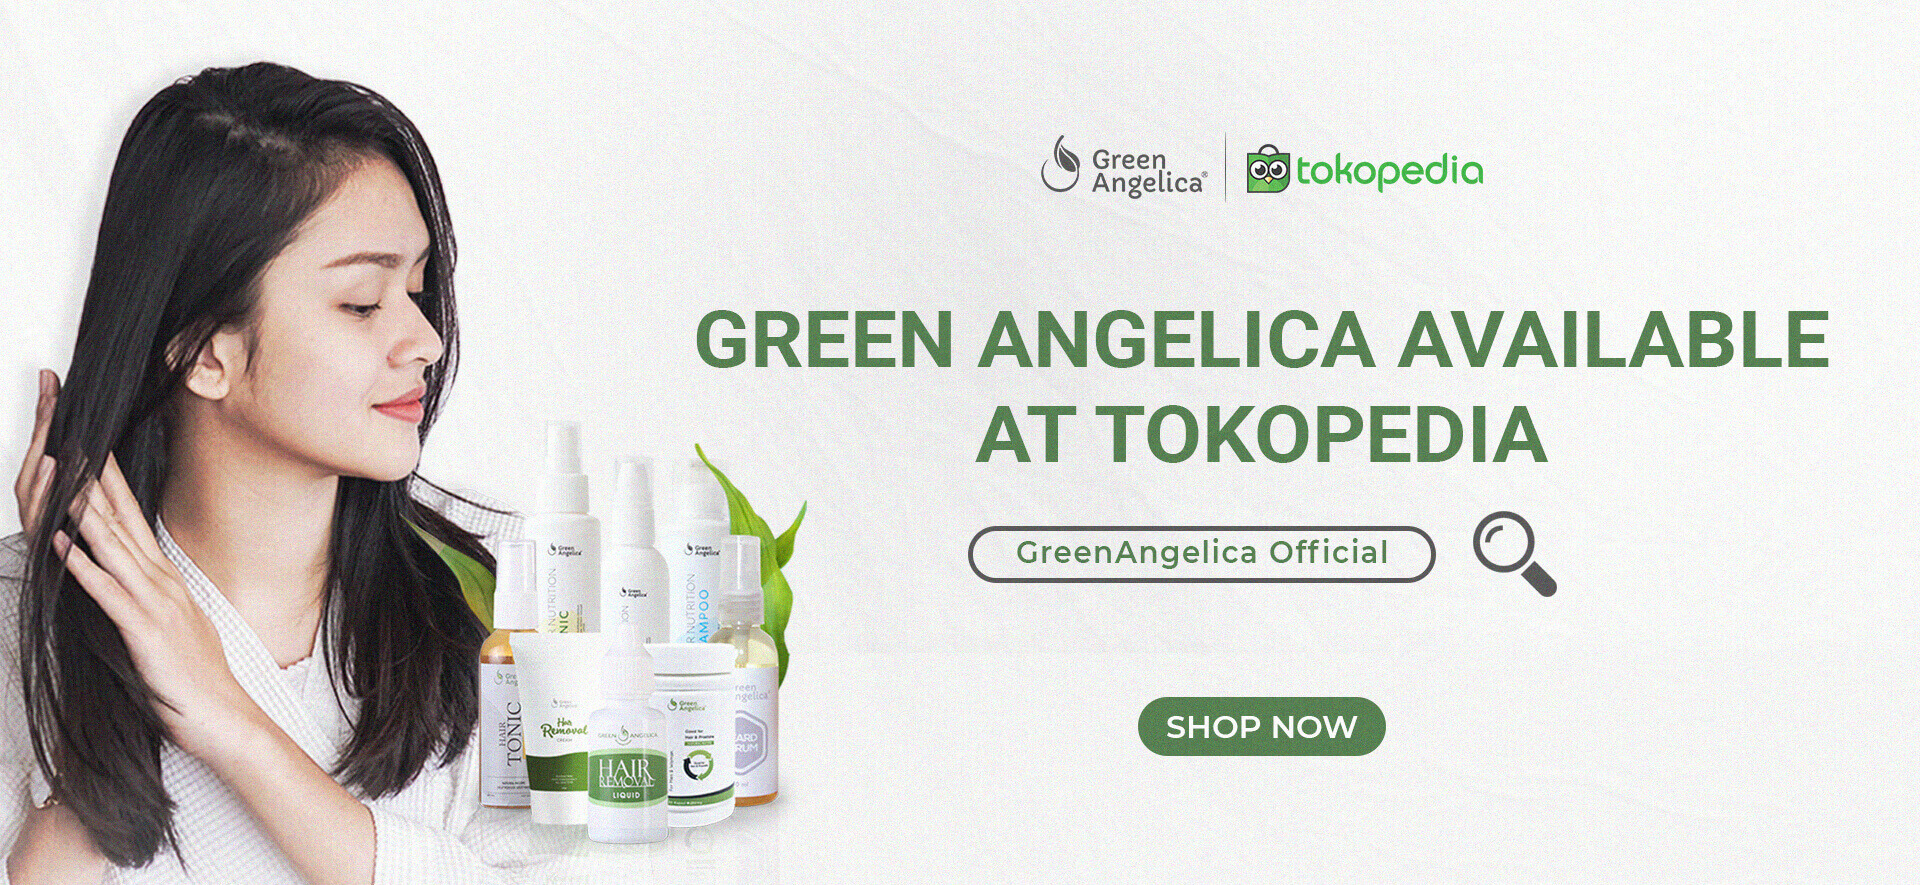 Tokopedia Official Store Green Angelica